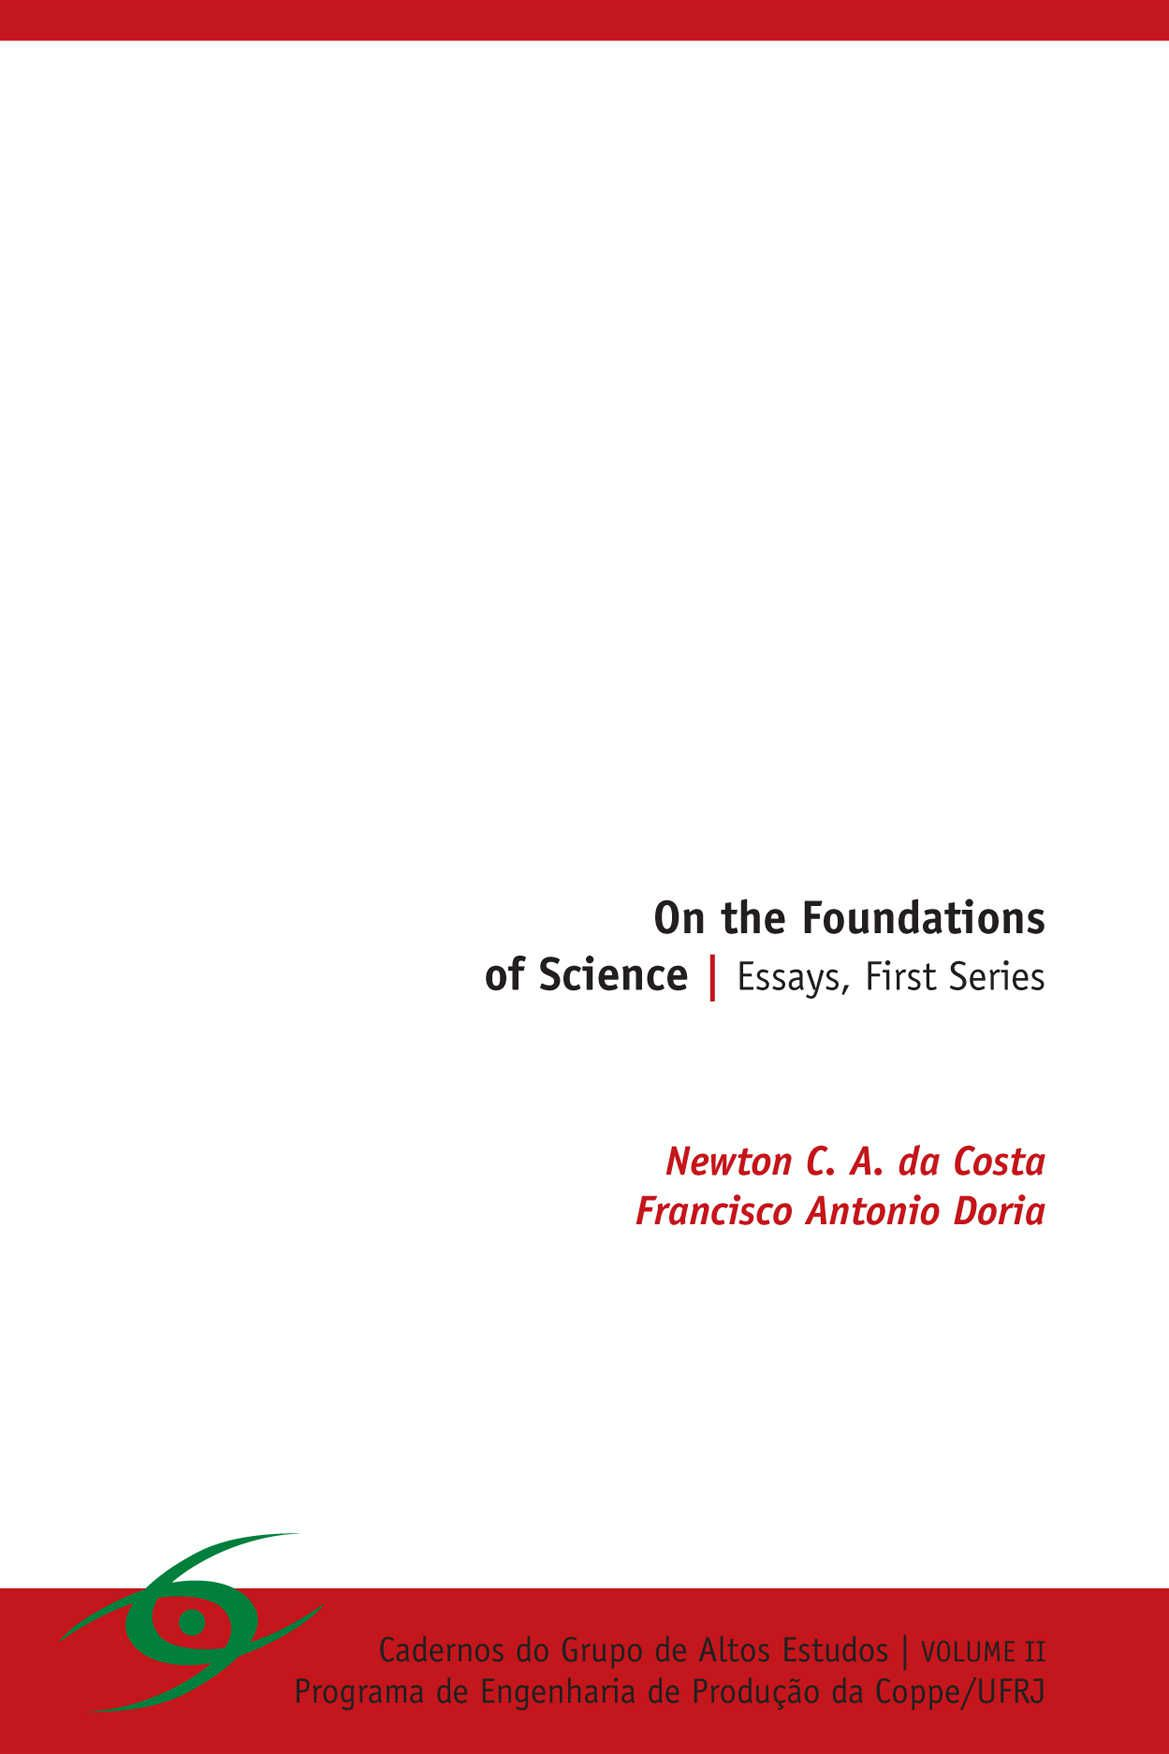 On the Foundations of Science (LIVRO): Essays, First Series